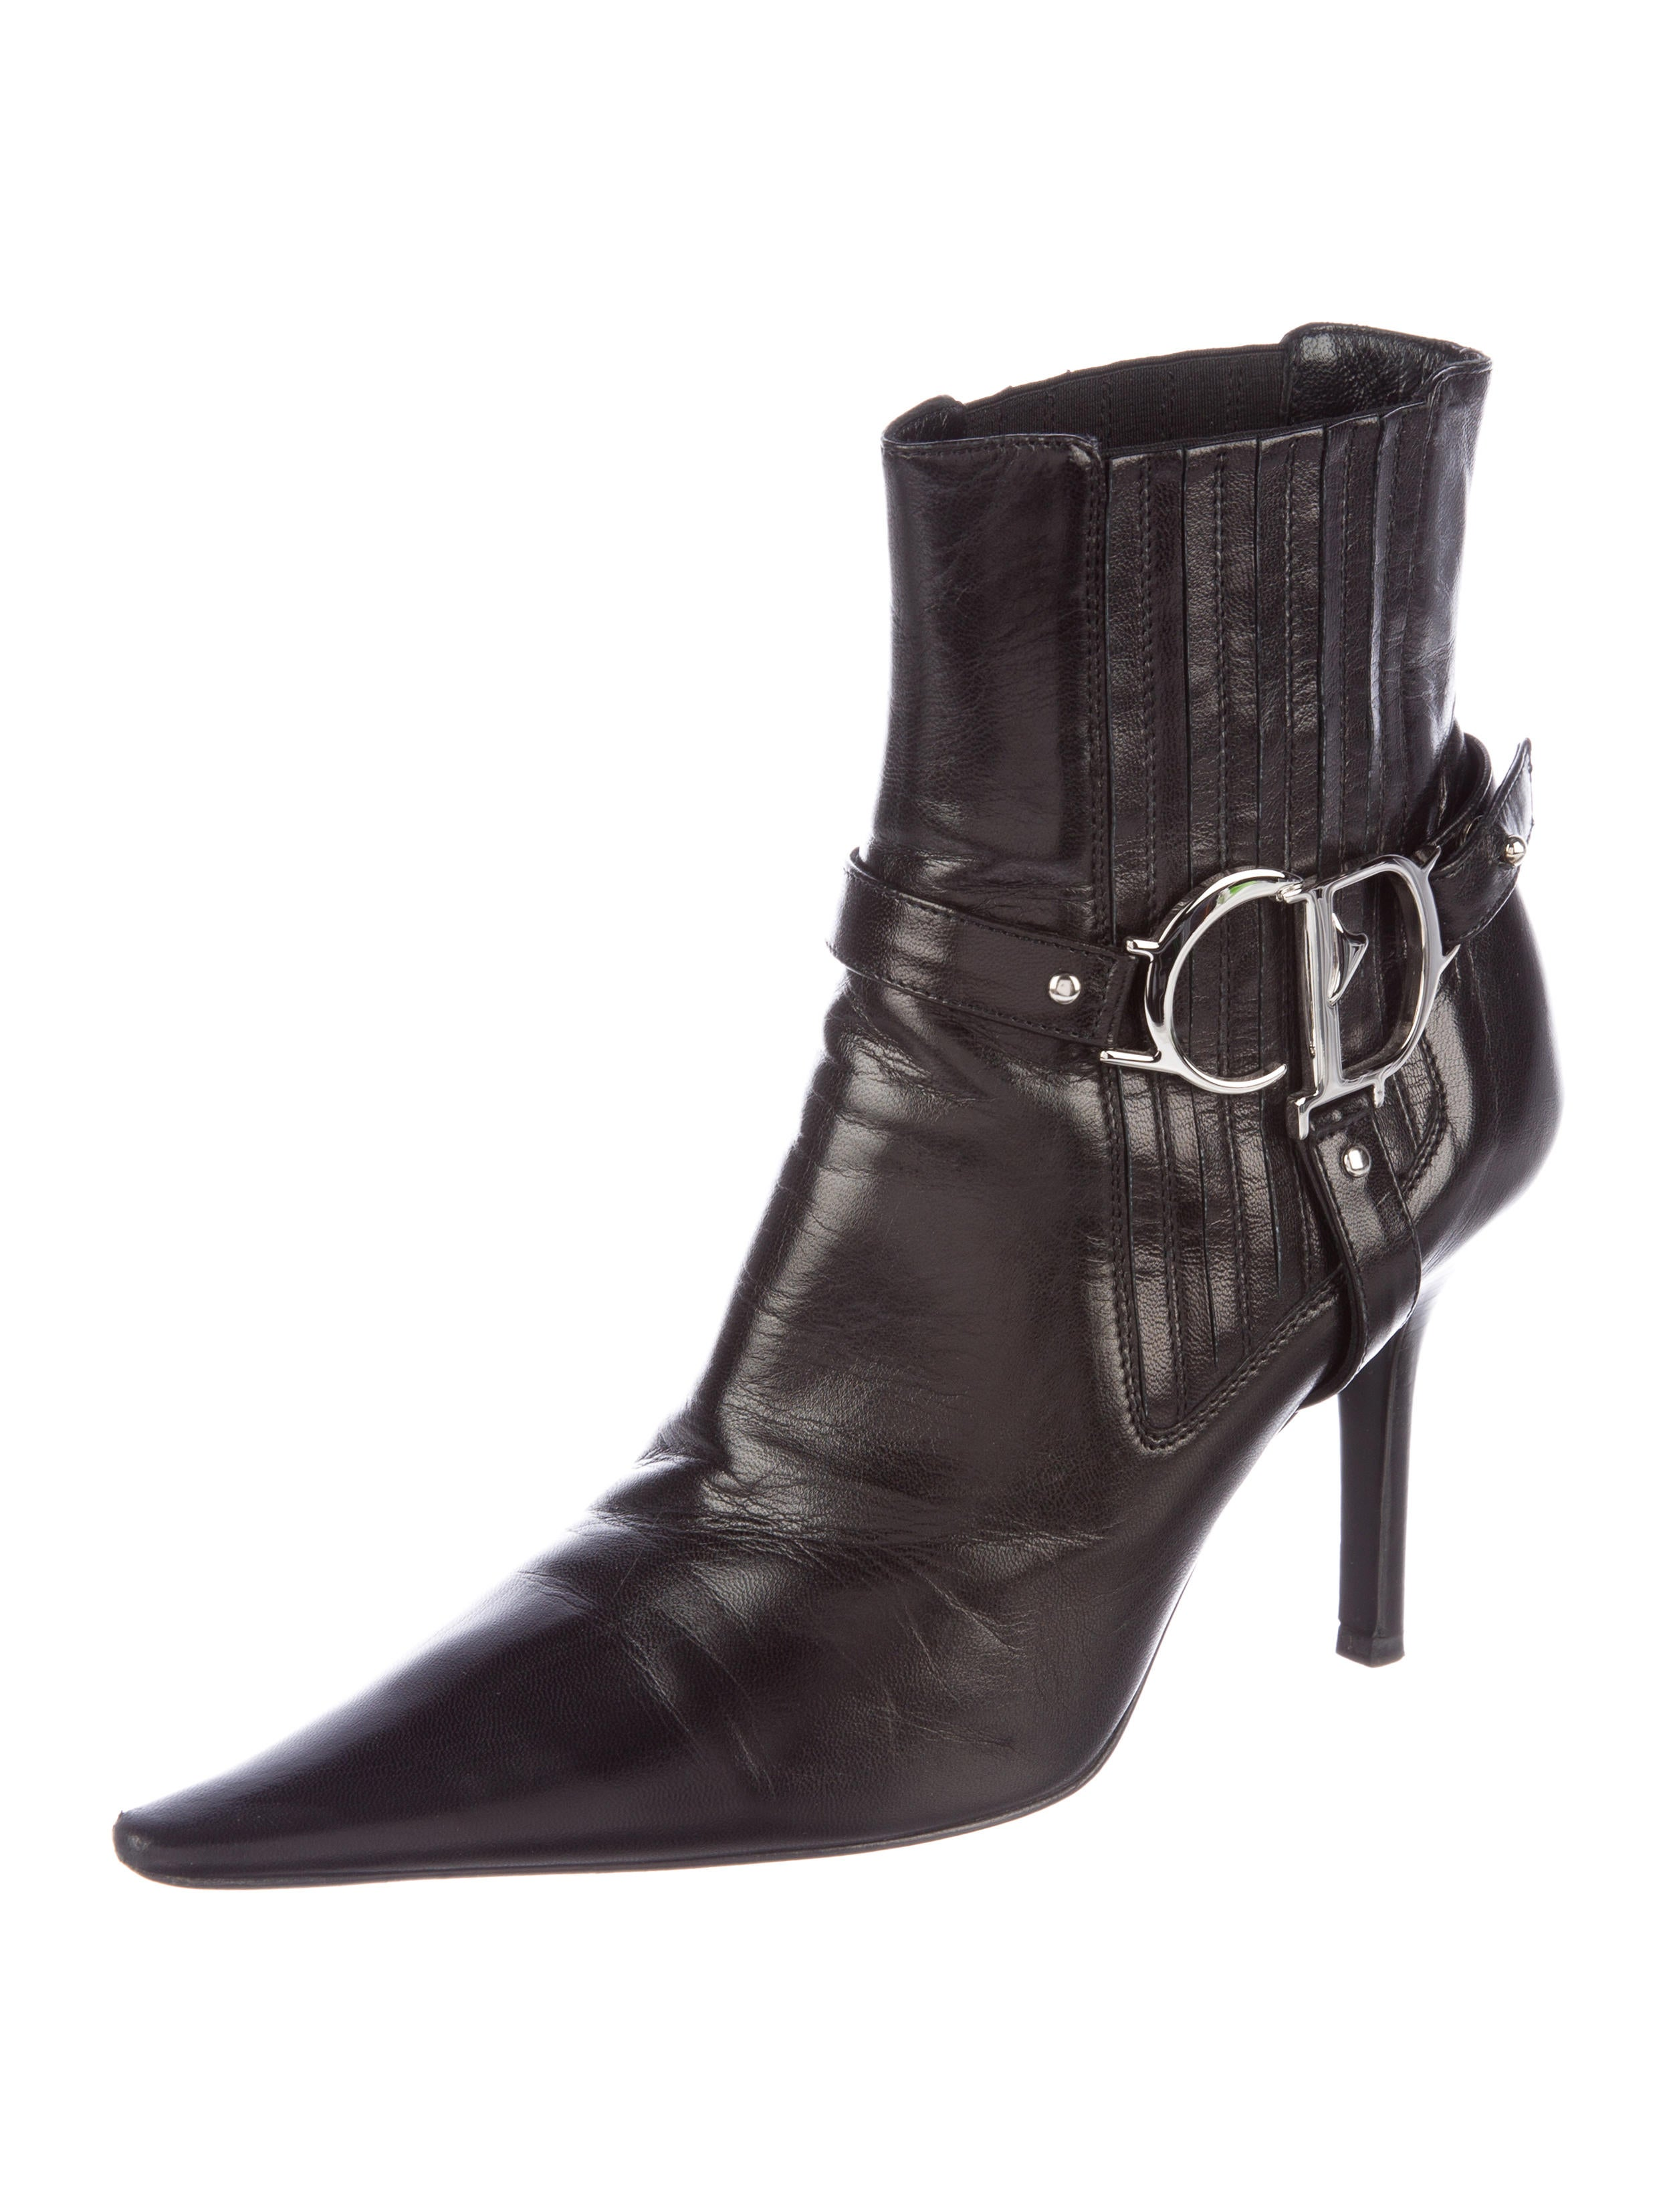 Christian Dior Logo Stirrup Booties clearance shop for genuine online fake for sale 2015 online buy cheap best sale hukEaW5Kuj